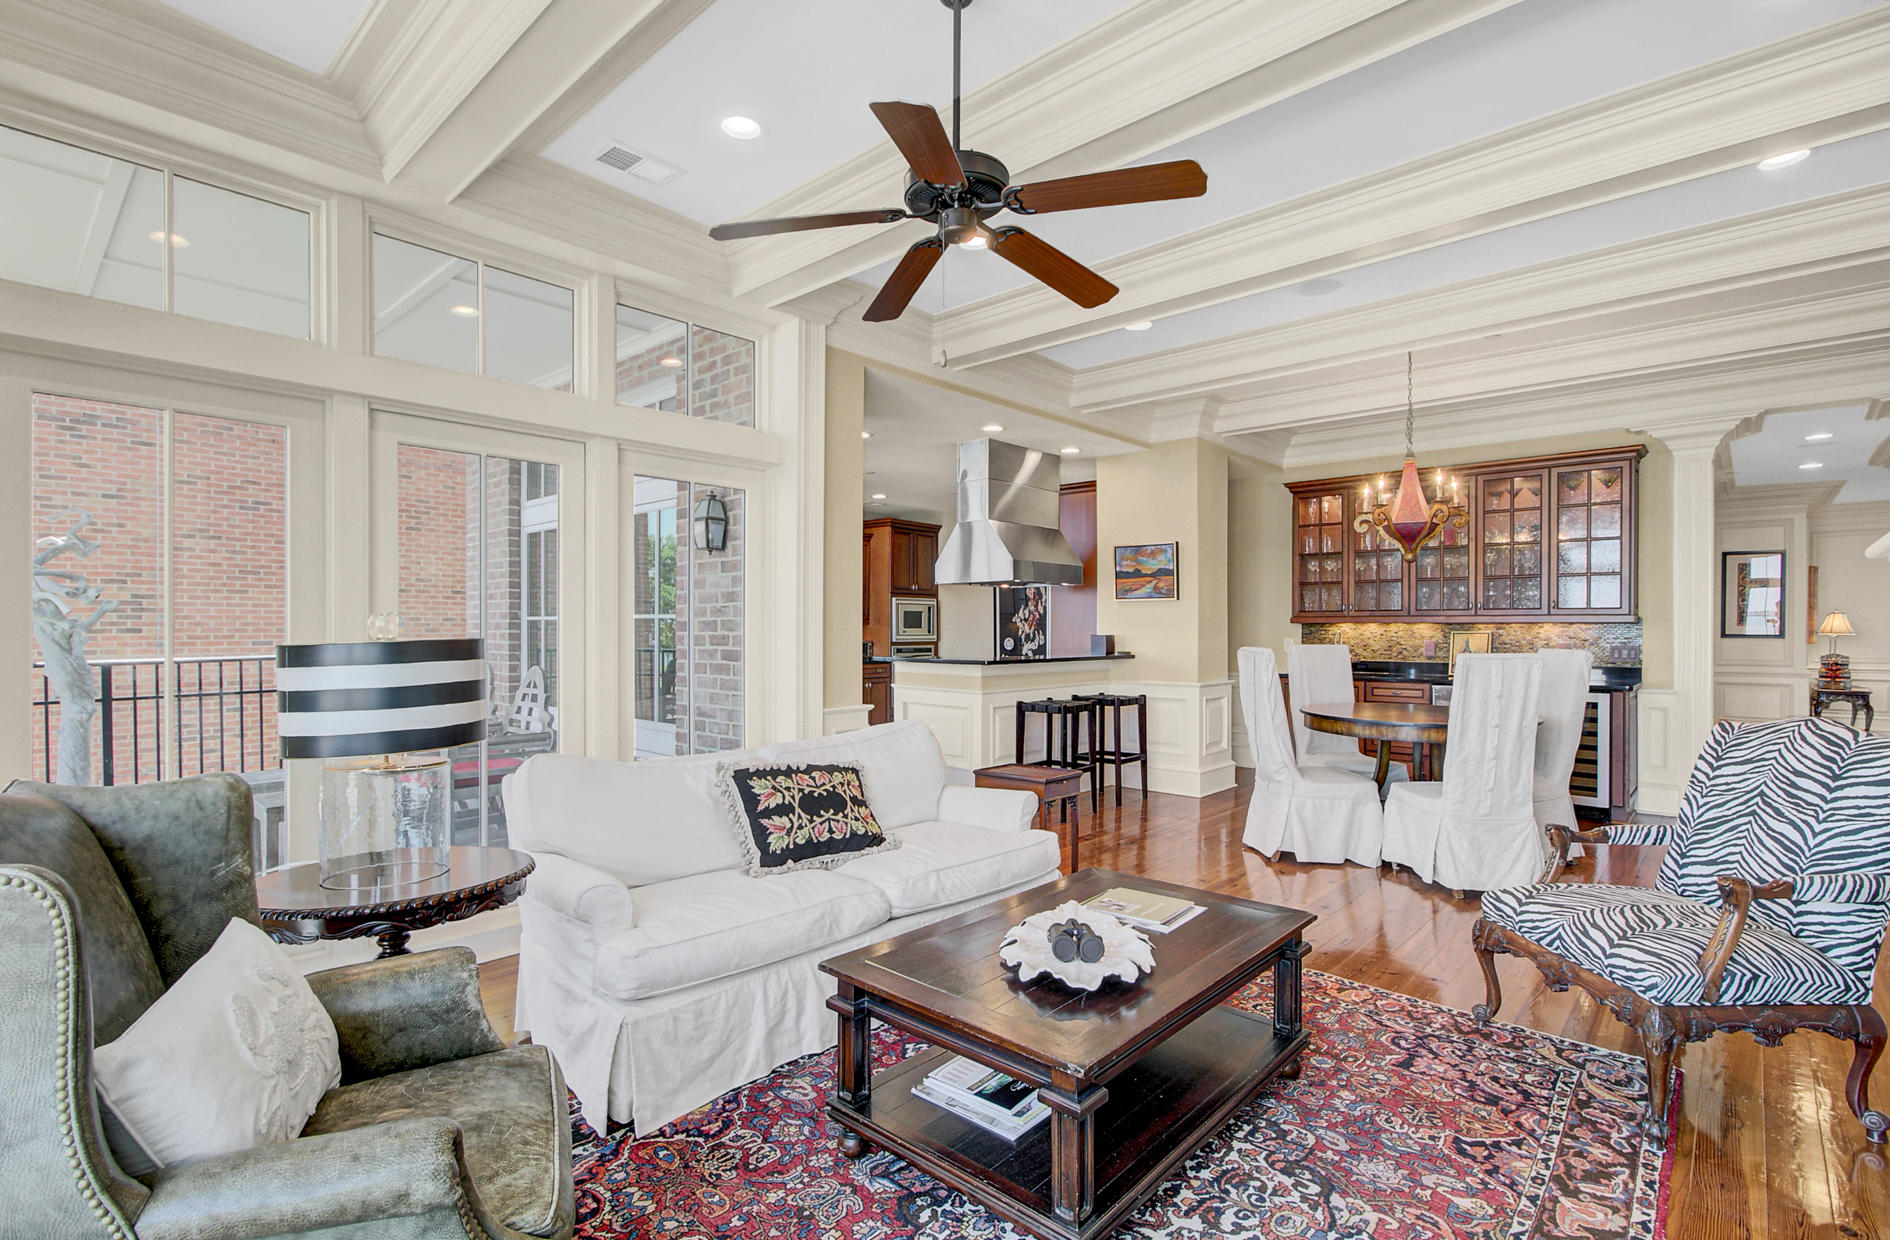 French Quarter Homes For Sale - 175 Concord, Charleston, SC - 10